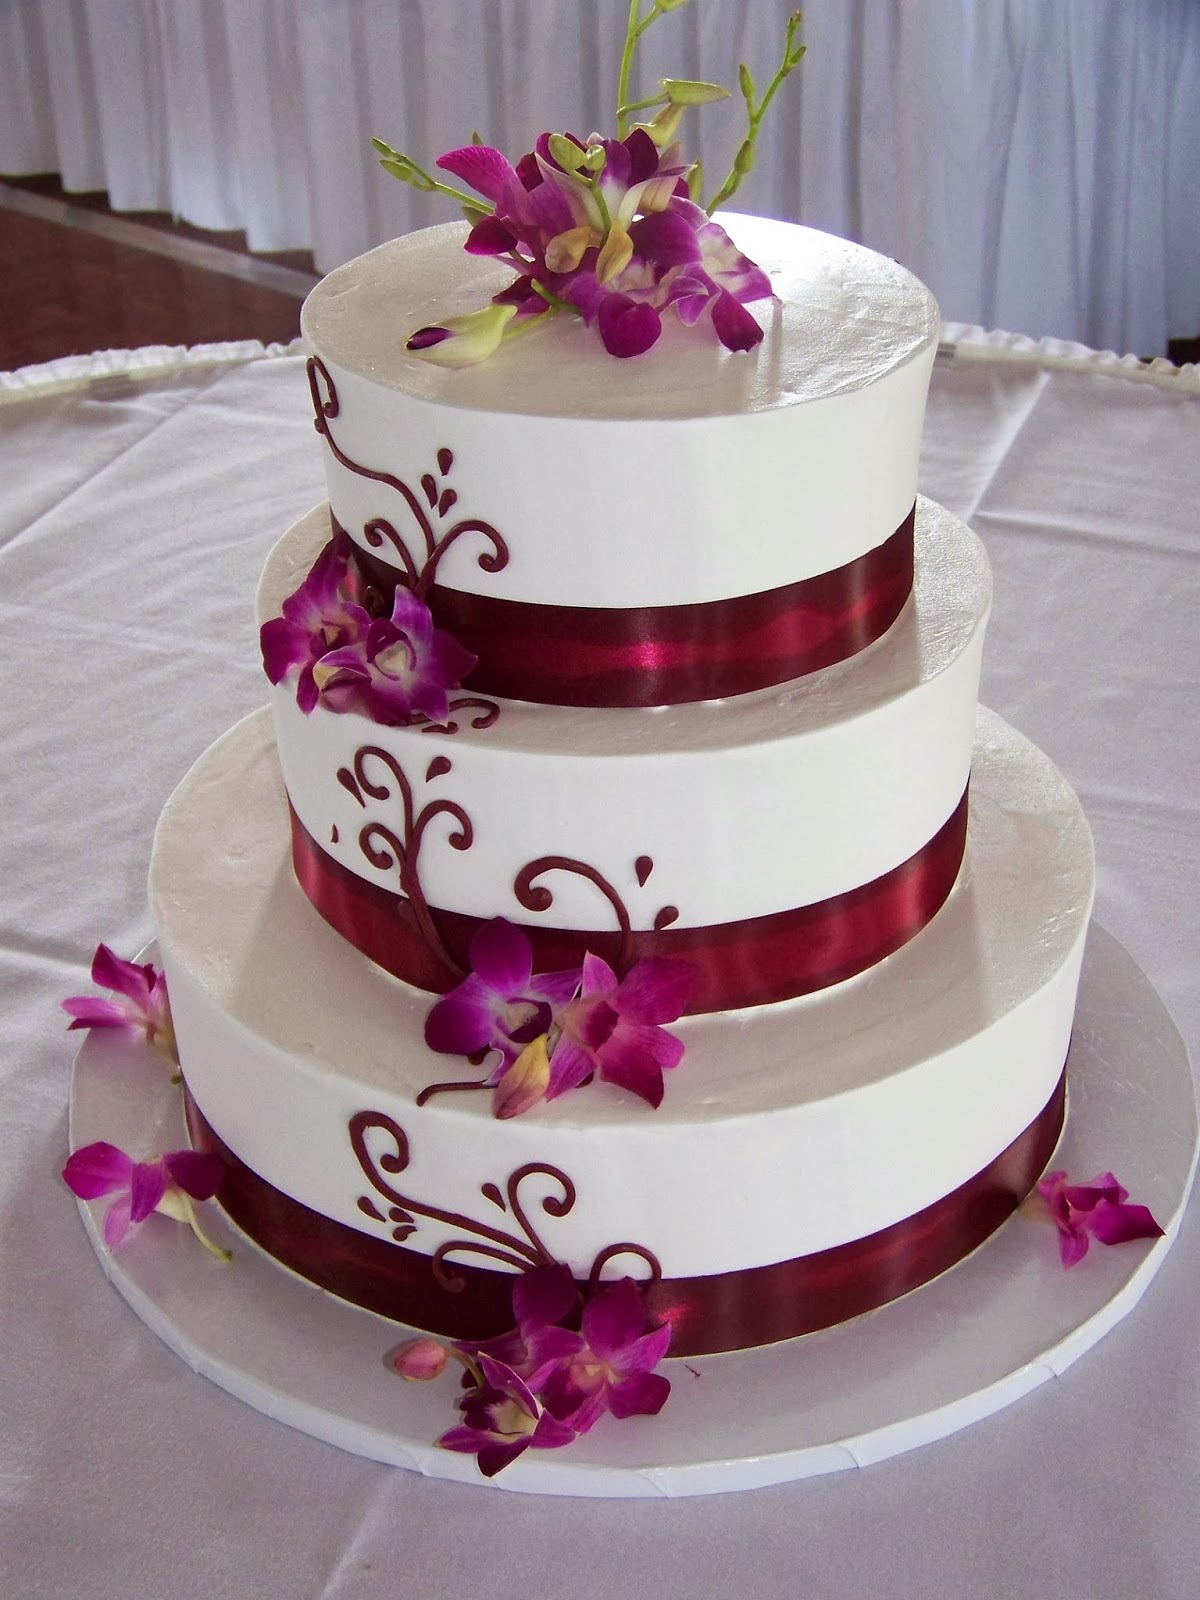 7 wonders of the world: Wedding Cake Hd Photo Gallery